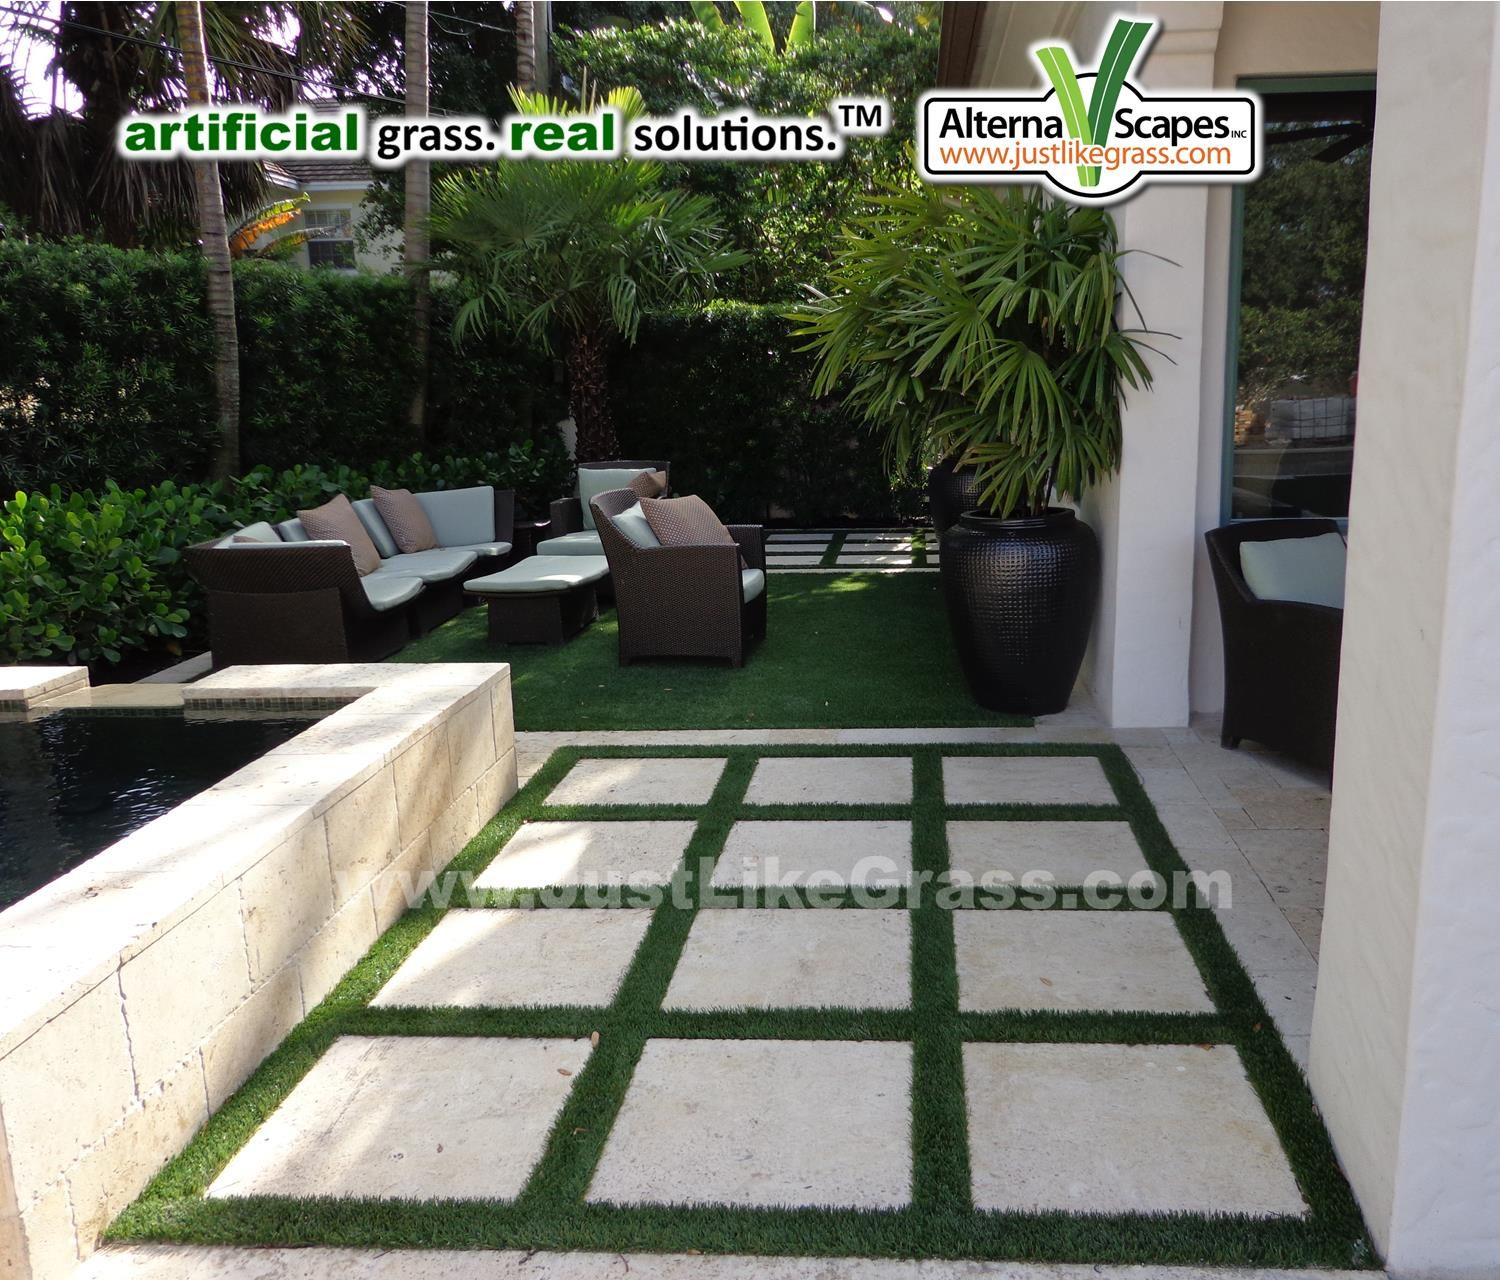 Seating area situated on artificial grass beside a water fountain